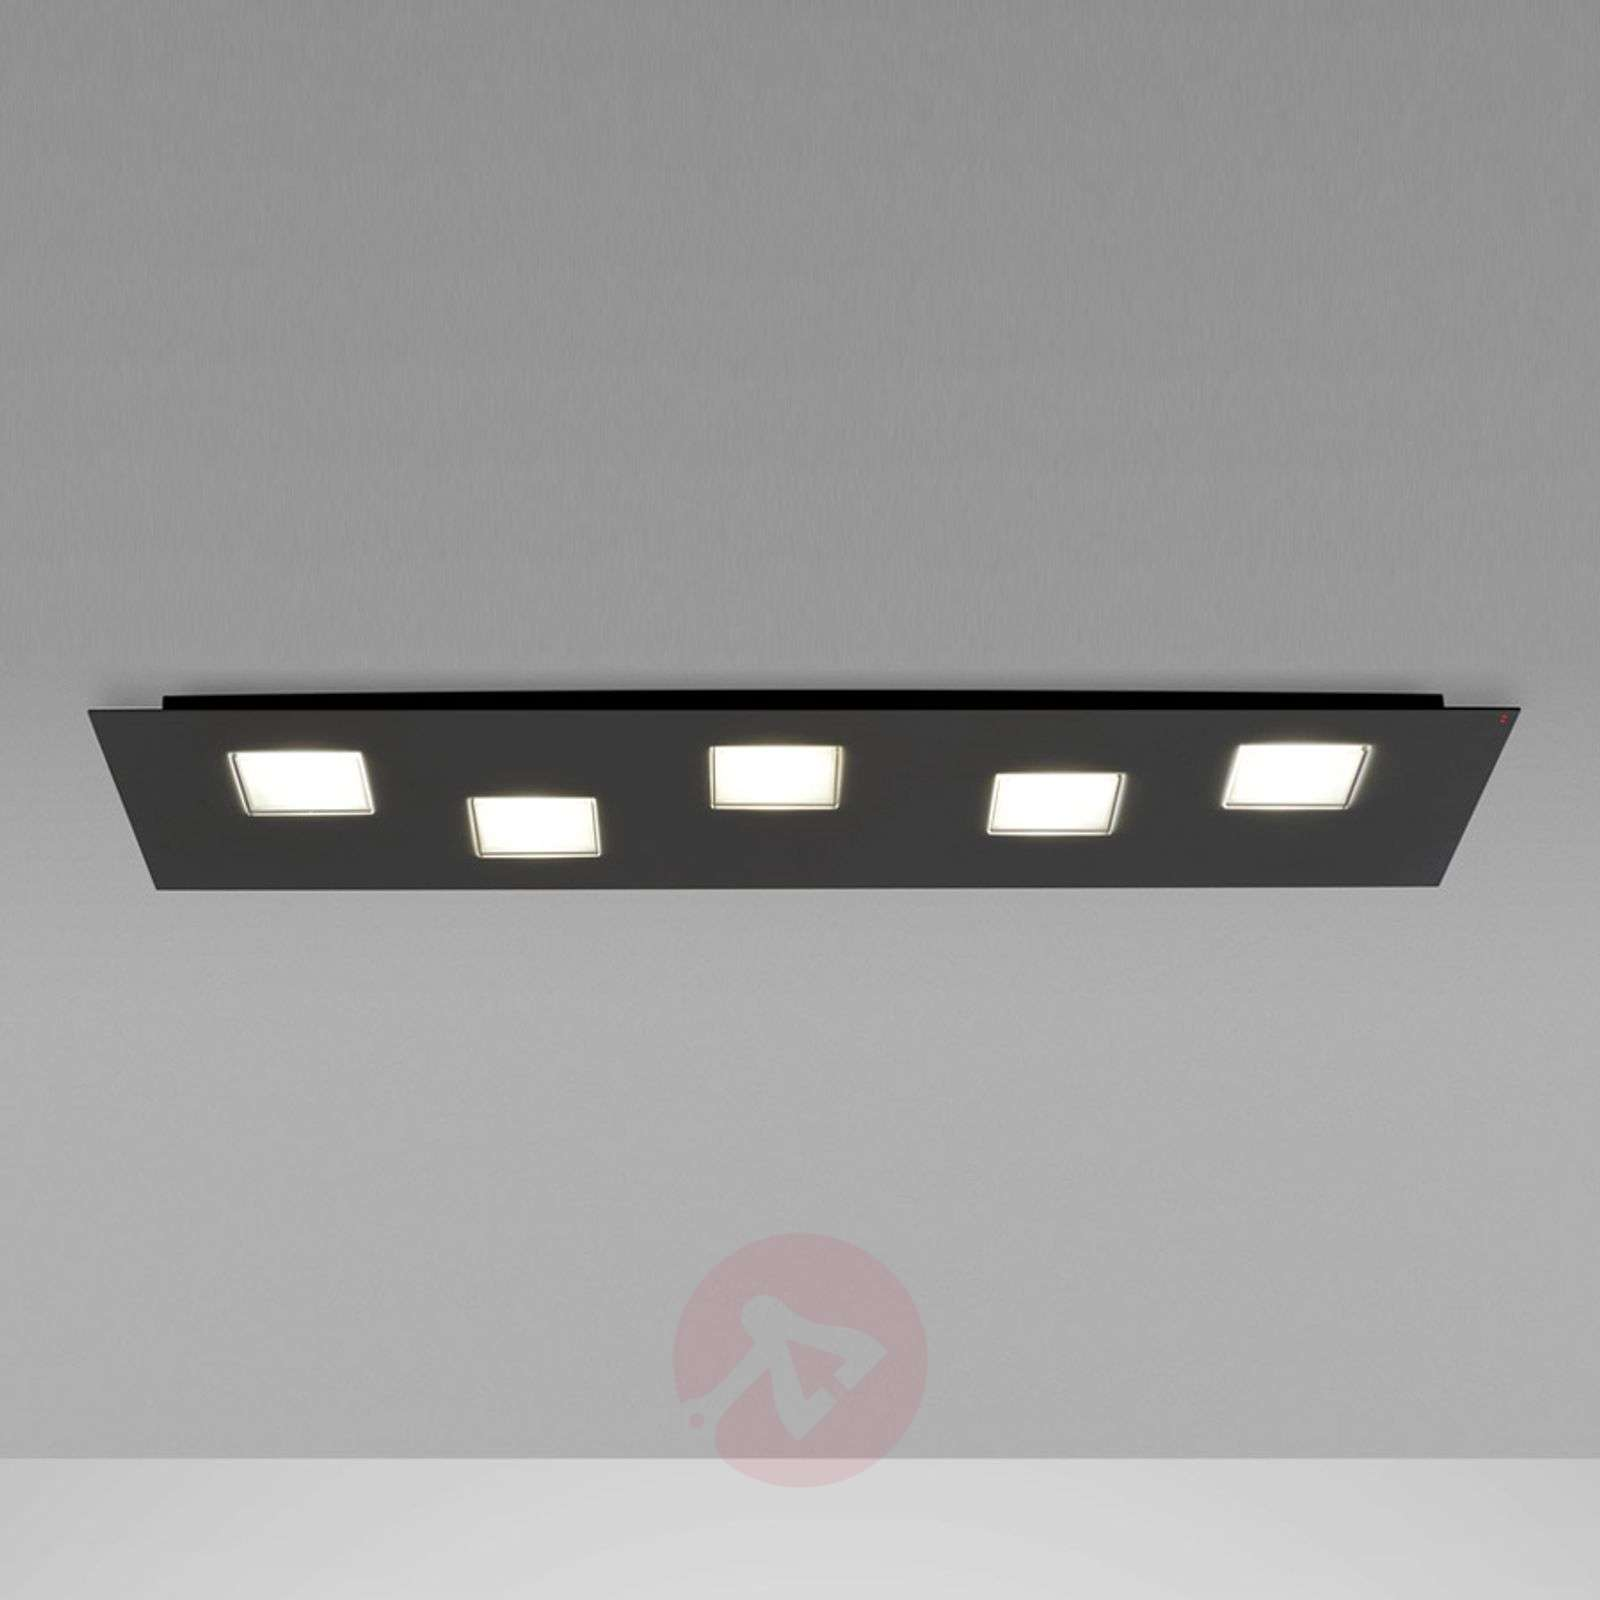 Plafonnier LED Quarter de 70 cm de long, noir-3503241-01